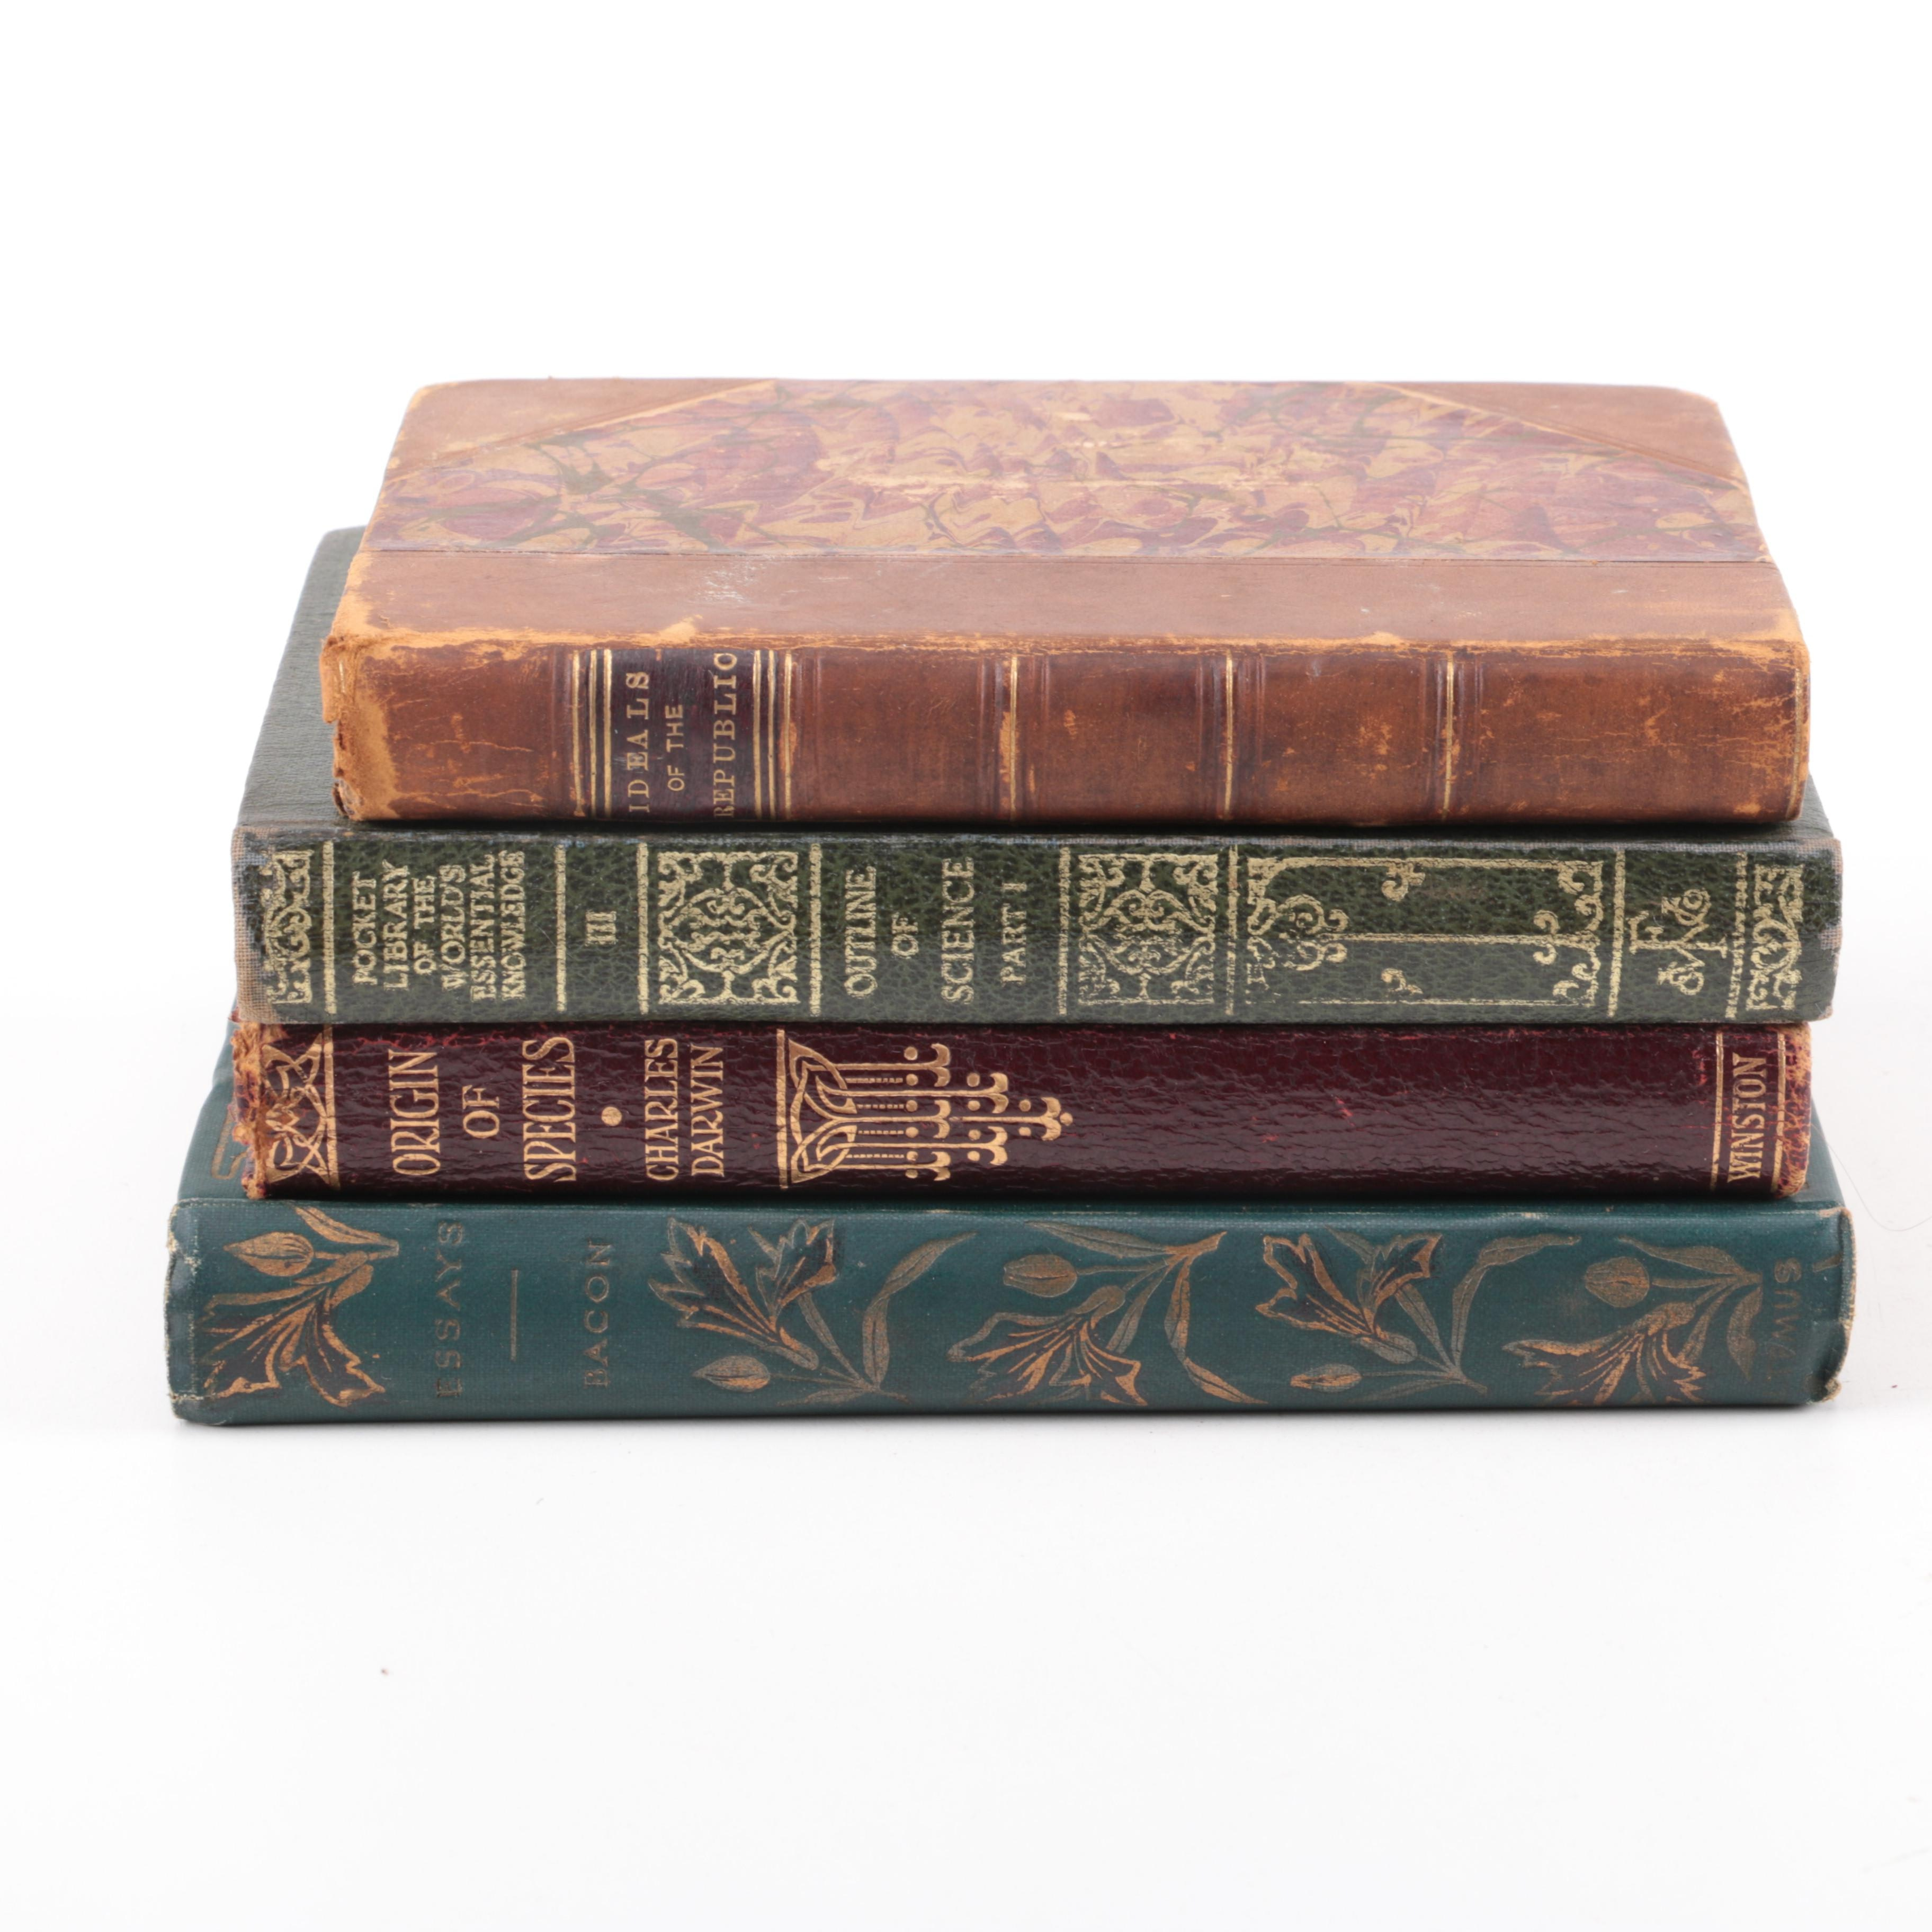 """Collection of Antique and Vintage Non-Fiction Books Including """"Origin of Species"""" by Charles Darwin"""